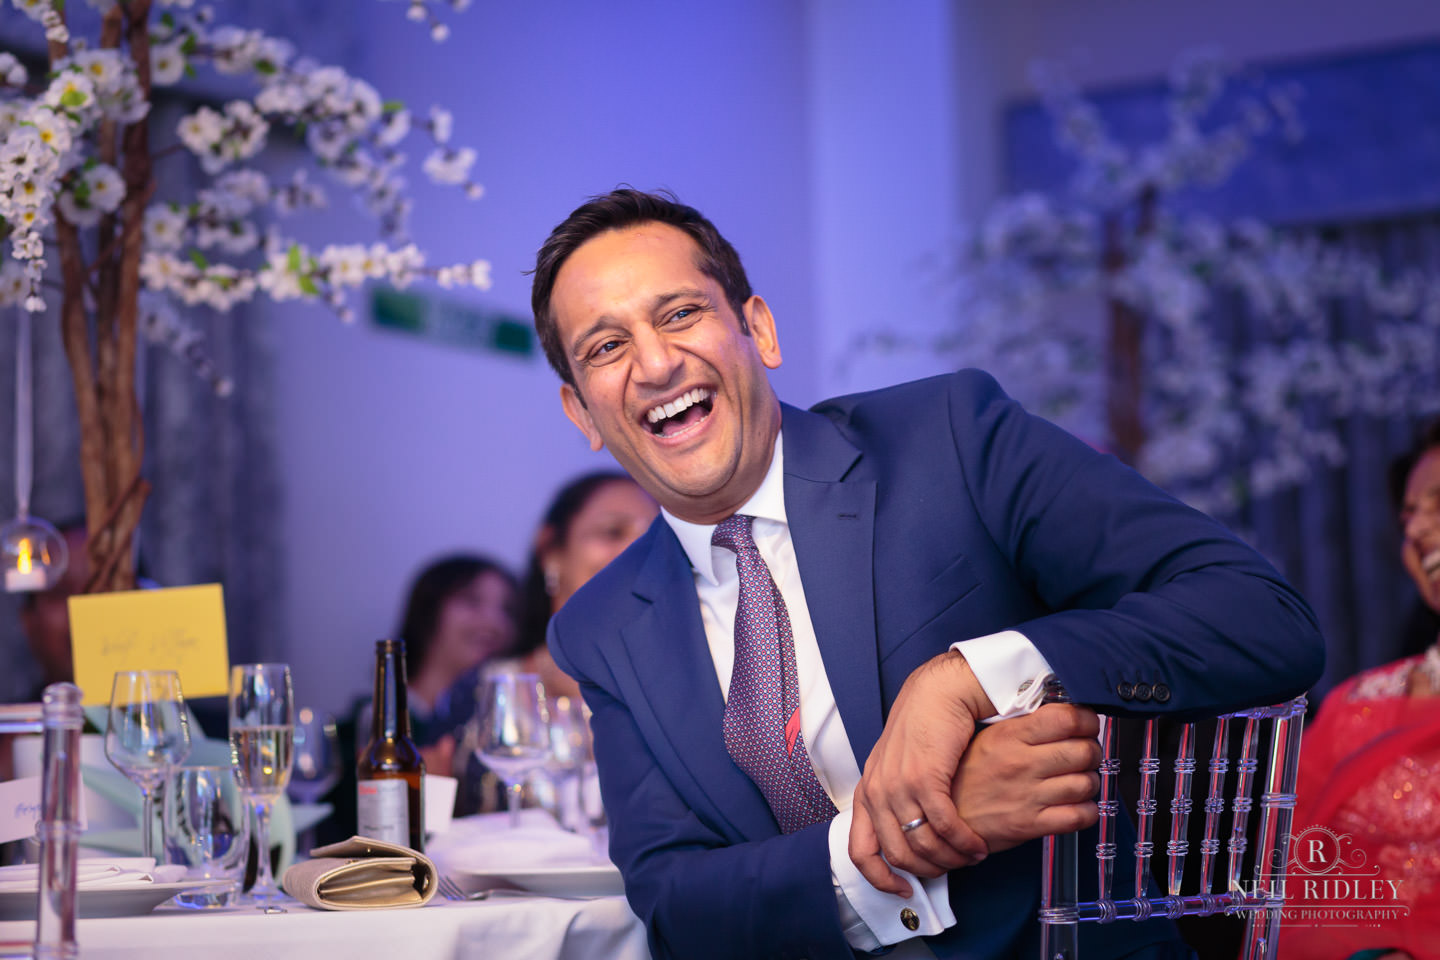 Merrydale Manor Wedding Photographer - Wedding guest laughs during the speeches